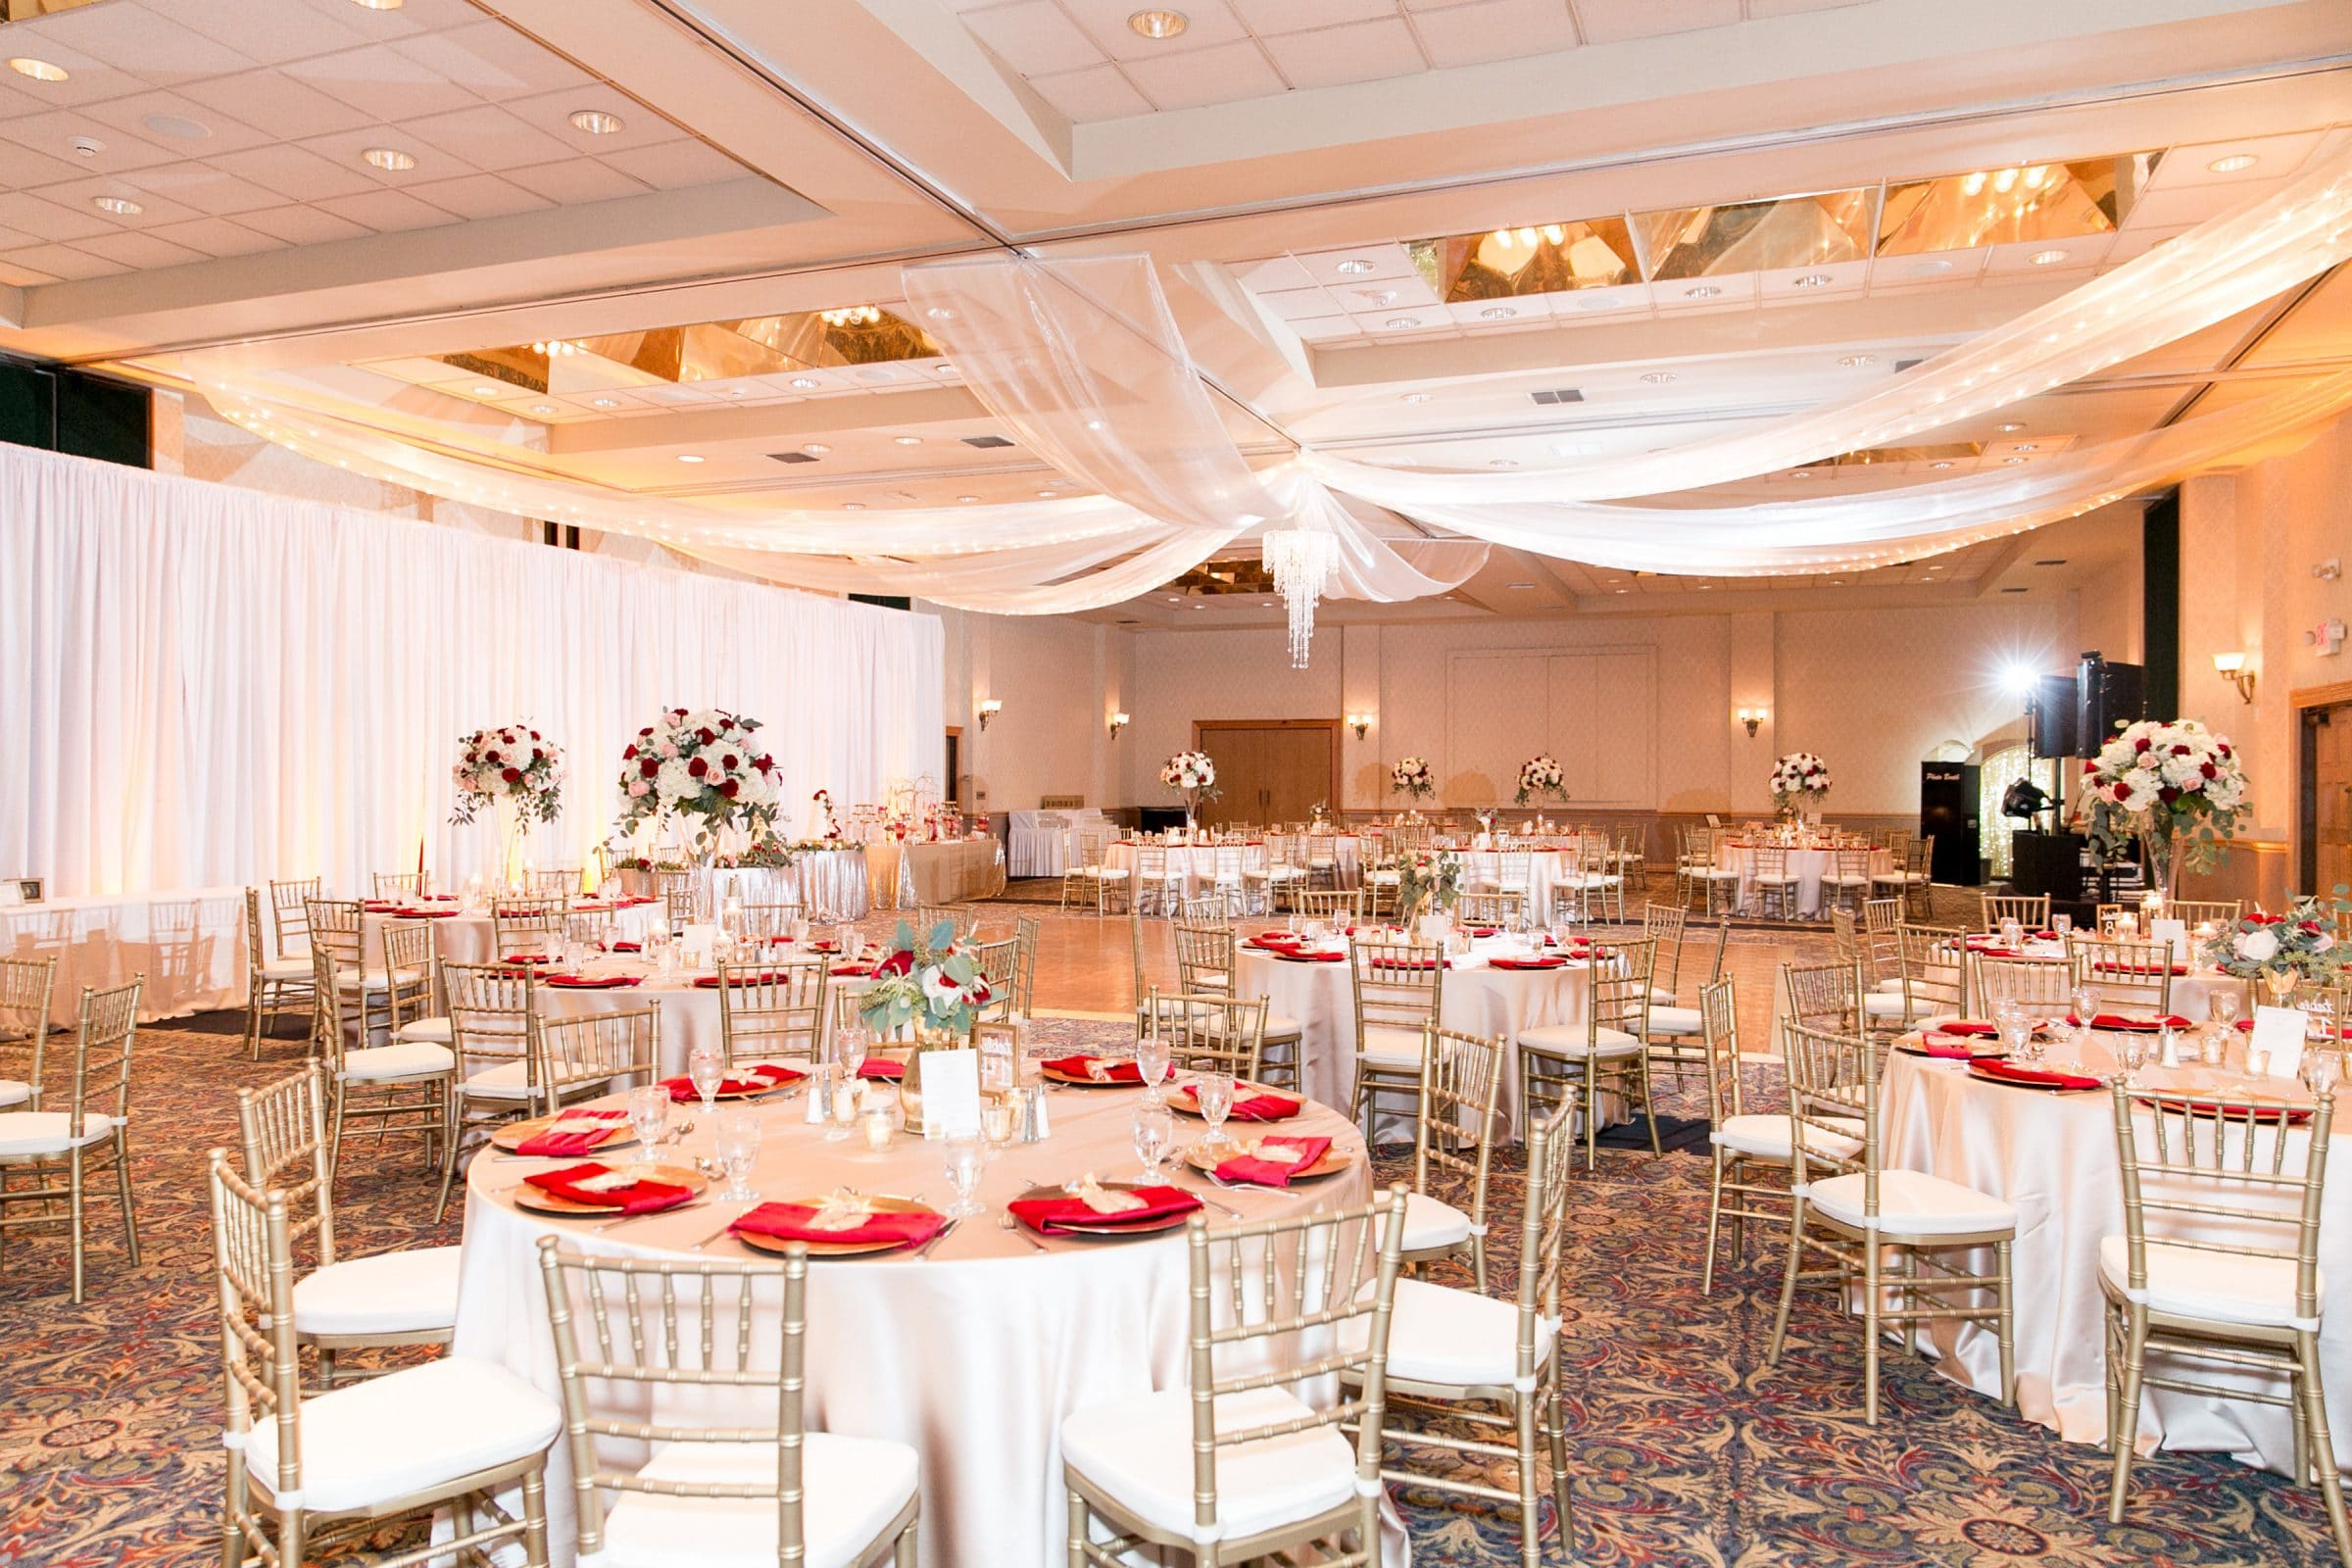 Grand Ballroom - our largest wedding reception venue